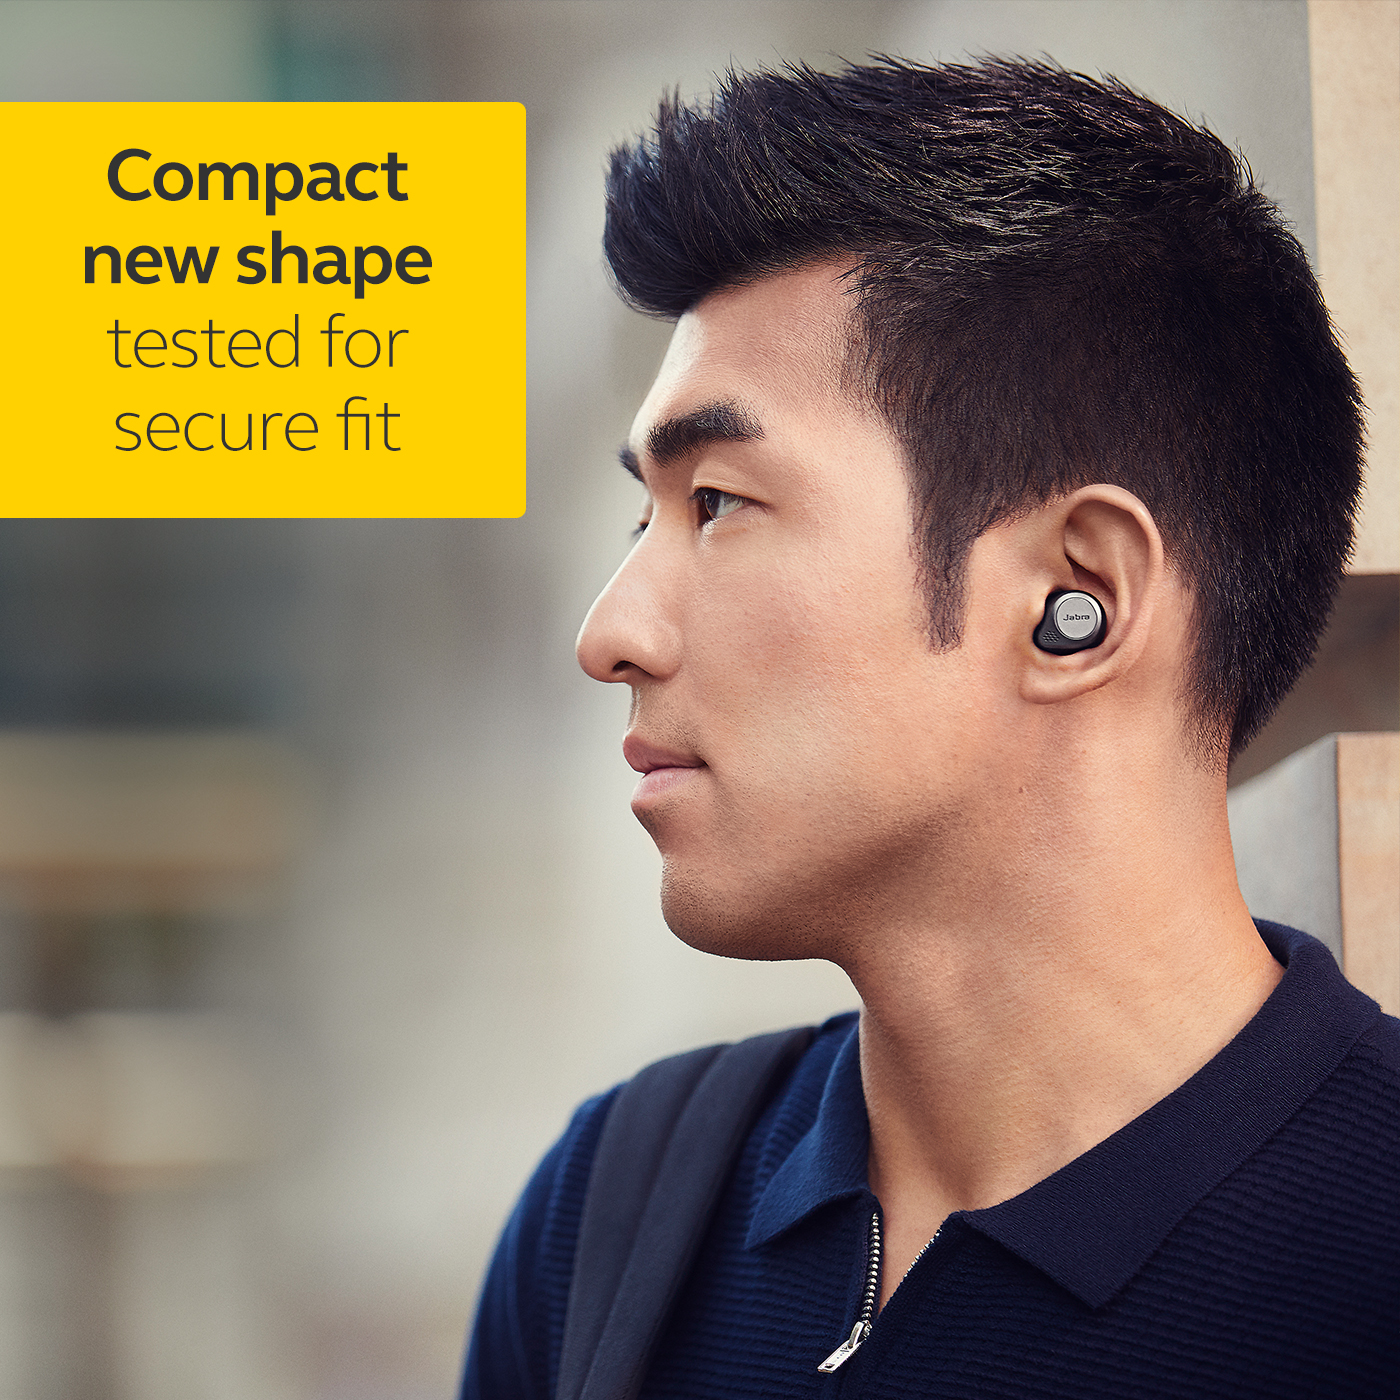 Jabra-Elite-75t-Voice-Assistant-Enabled-True-Wireless-earbuds-with-Charging-Case thumbnail 13